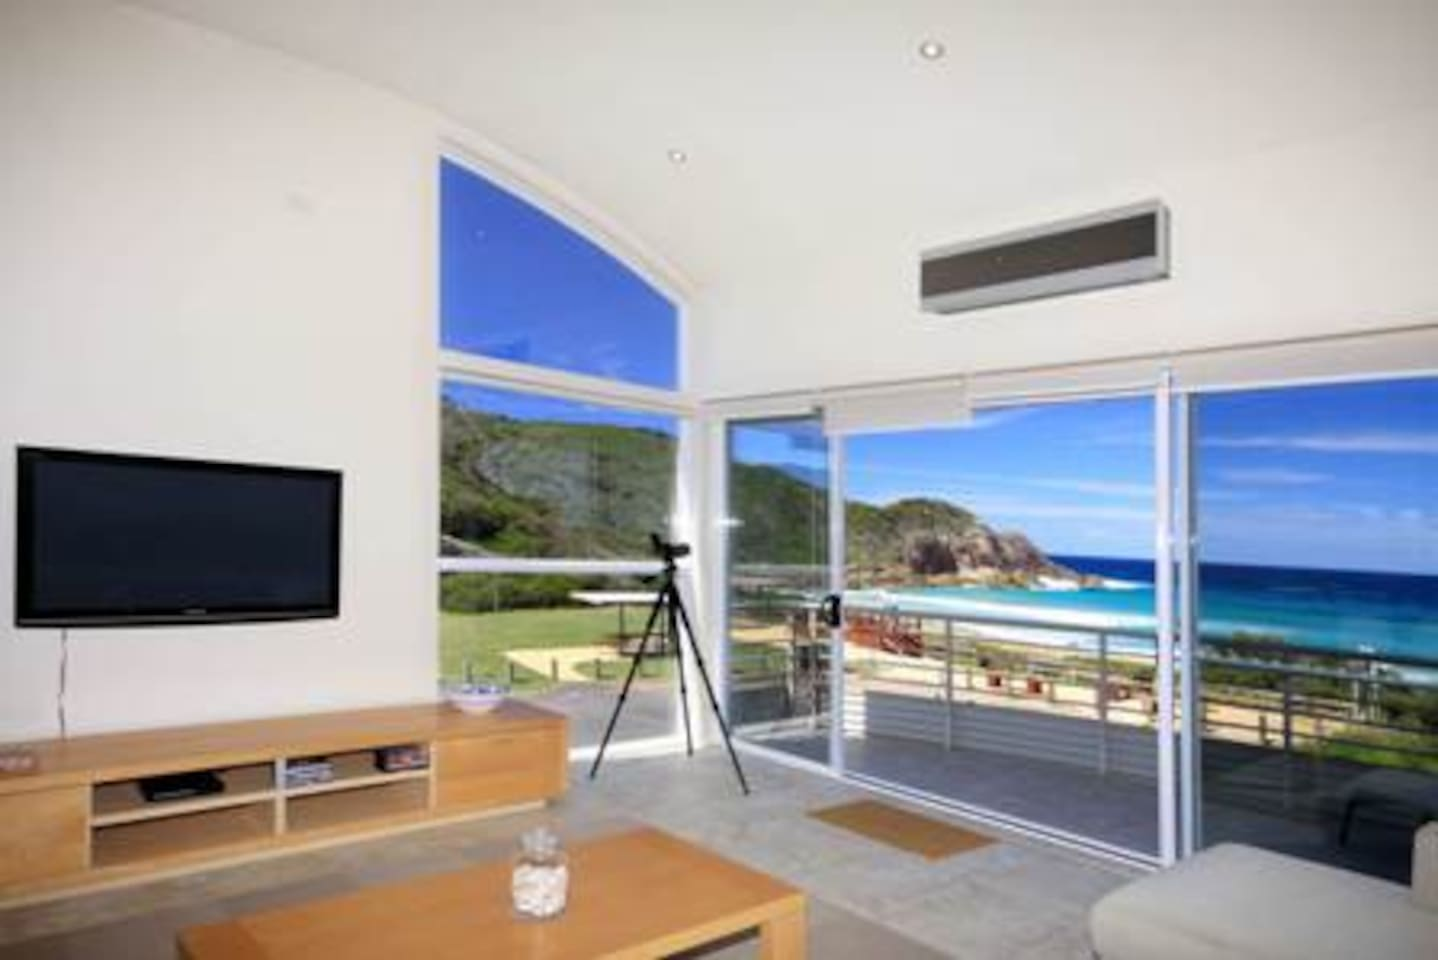 Main living area with views of North Boomerang beach and headland